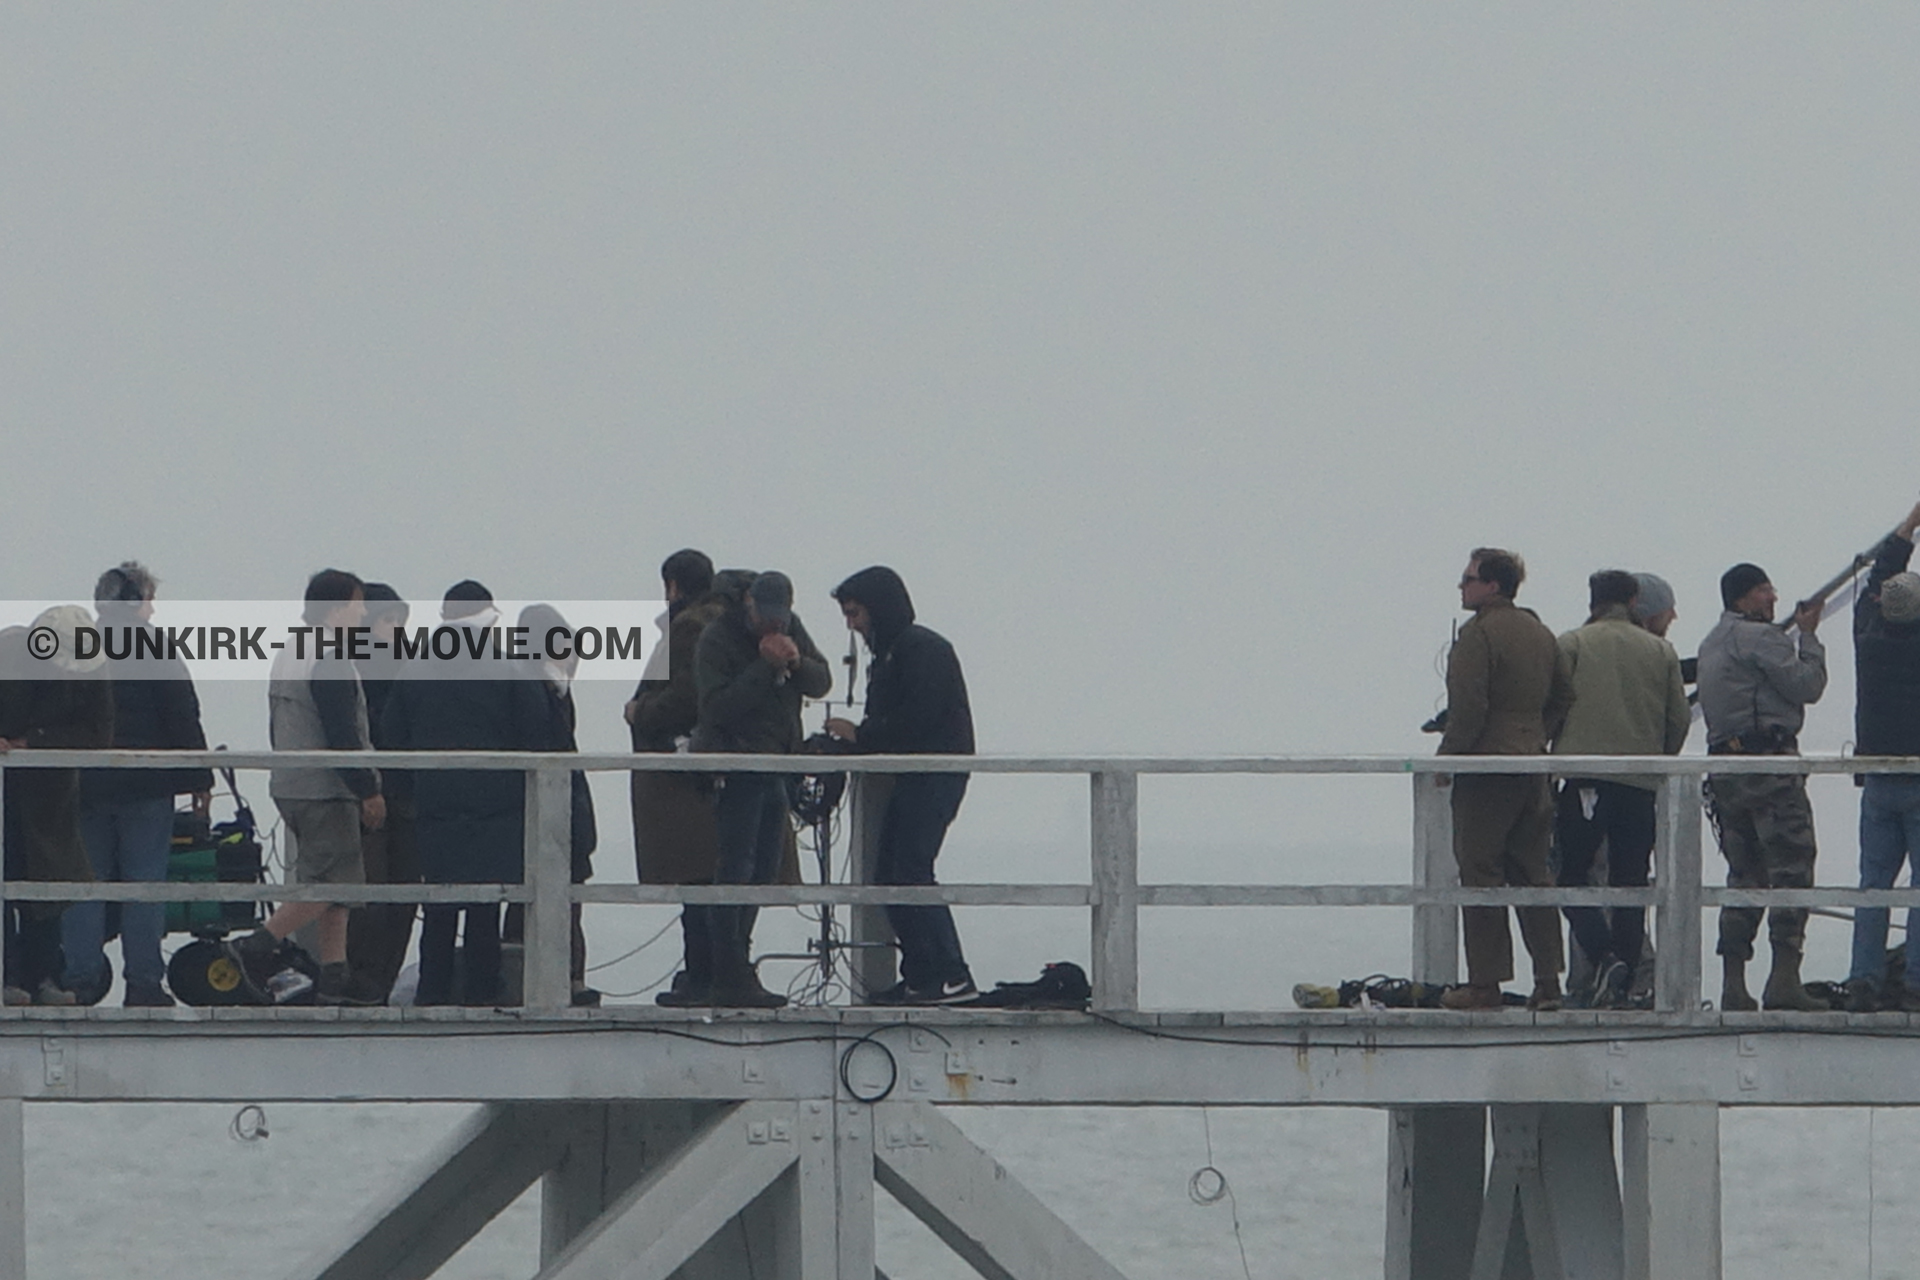 Photo on canvas number 182, of the filming of the film Dunkirk